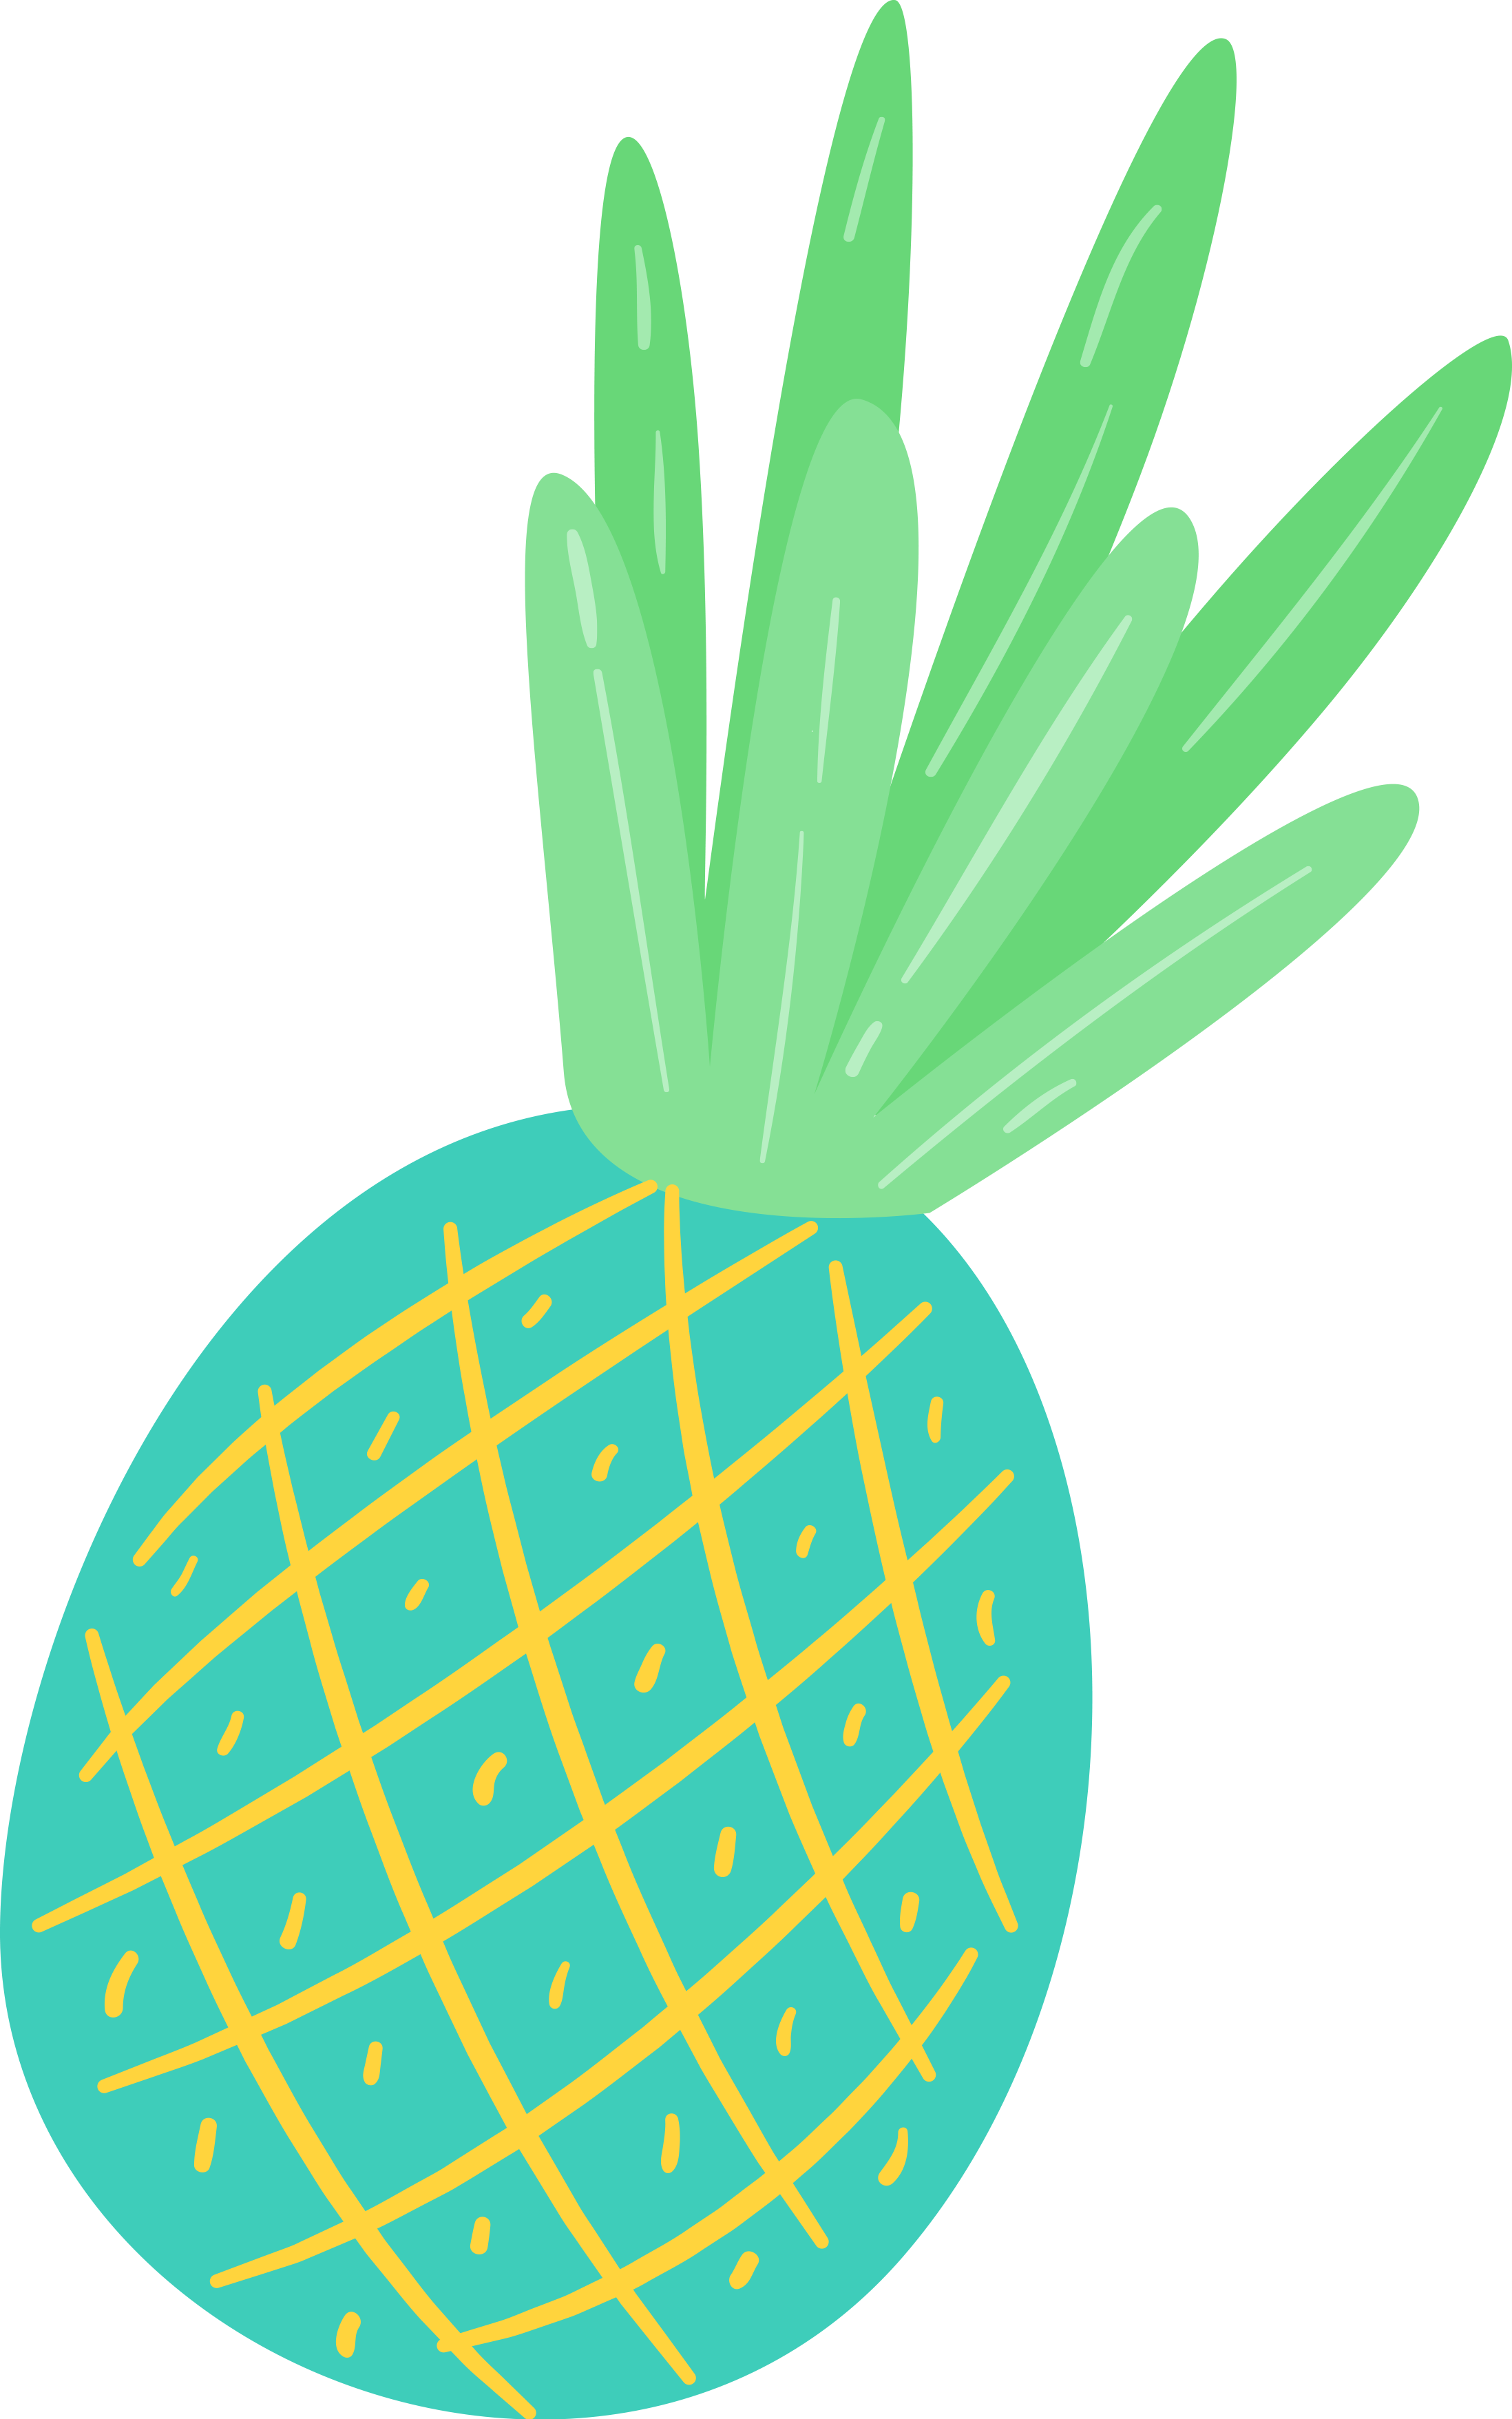 Pineapple clipart summer. Free fun pretty things